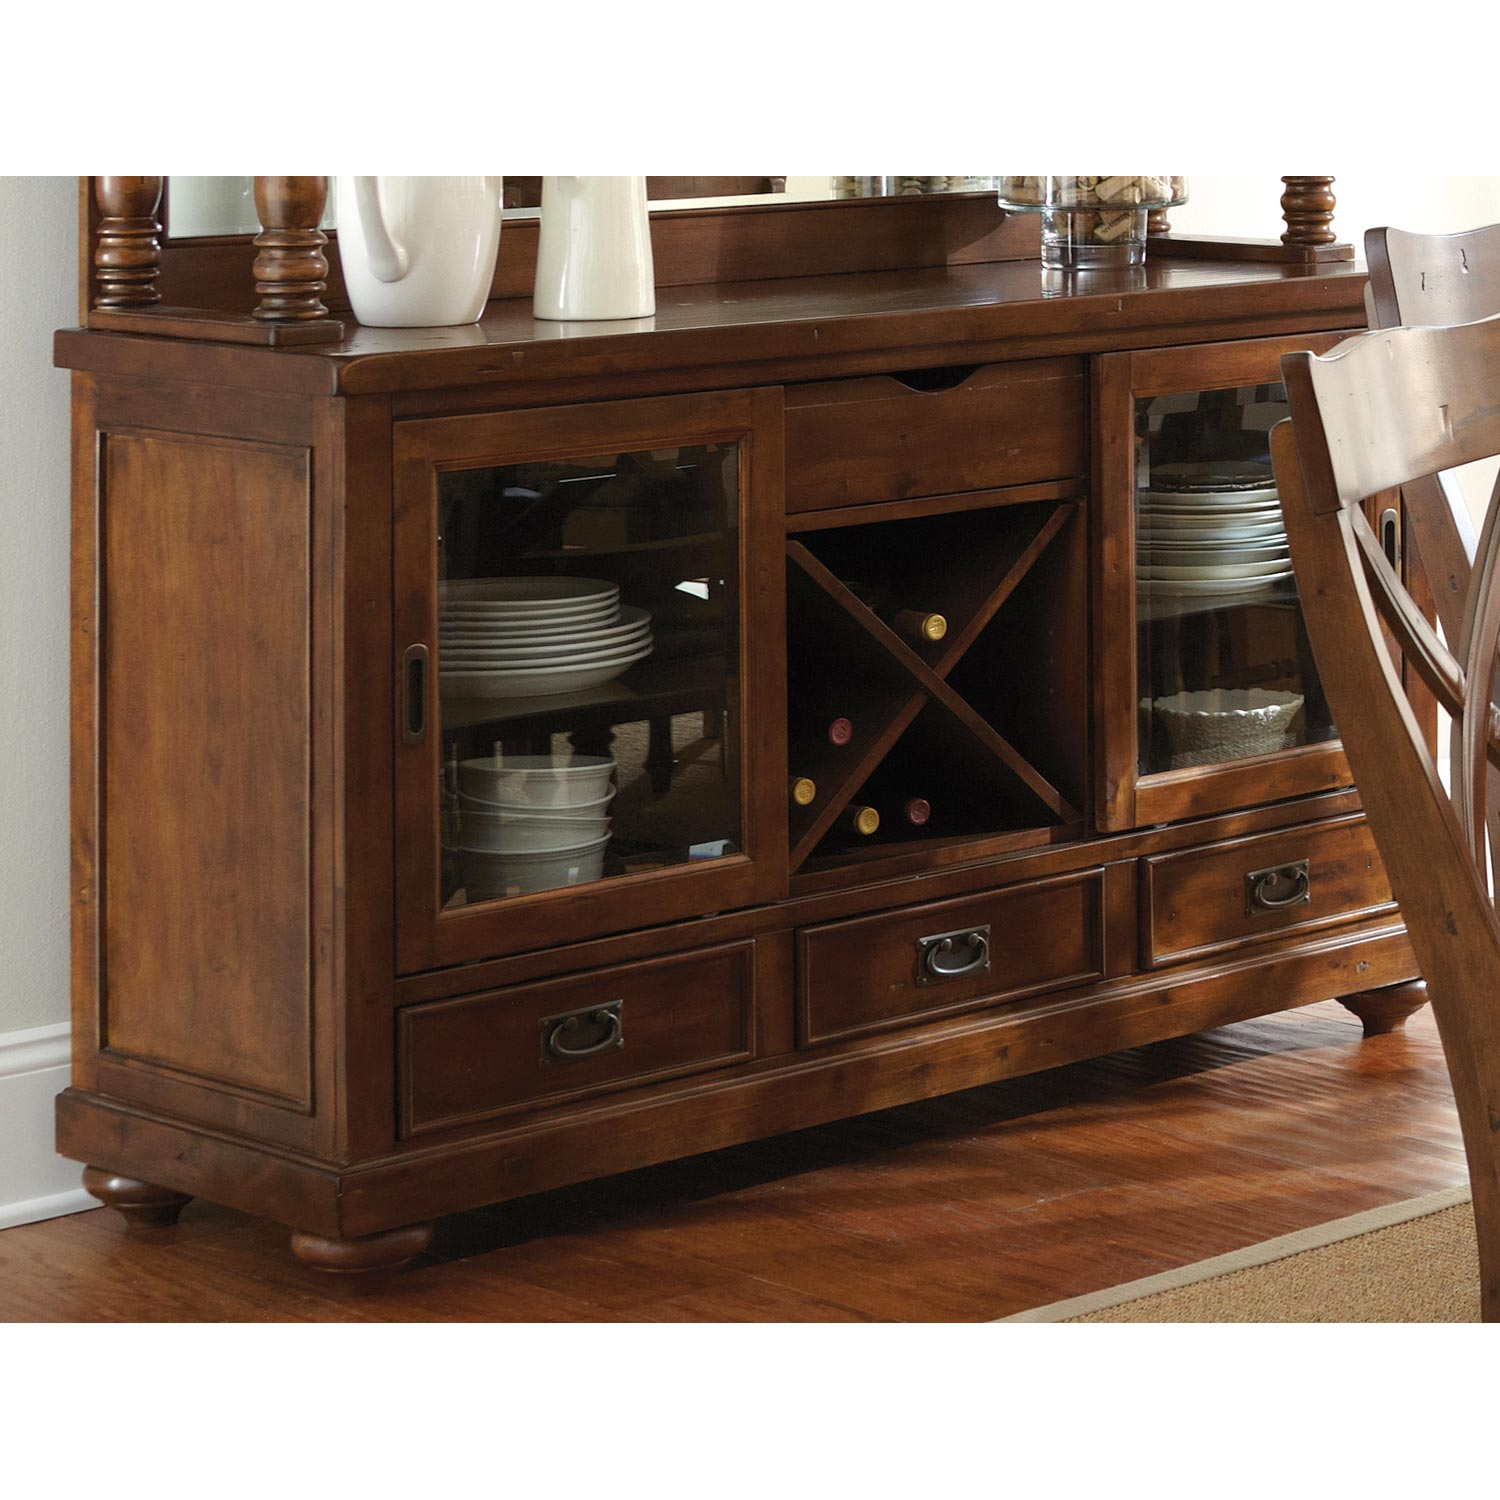 Wyndham Buffet Table Gl Doors Drawers Finish Dcg S